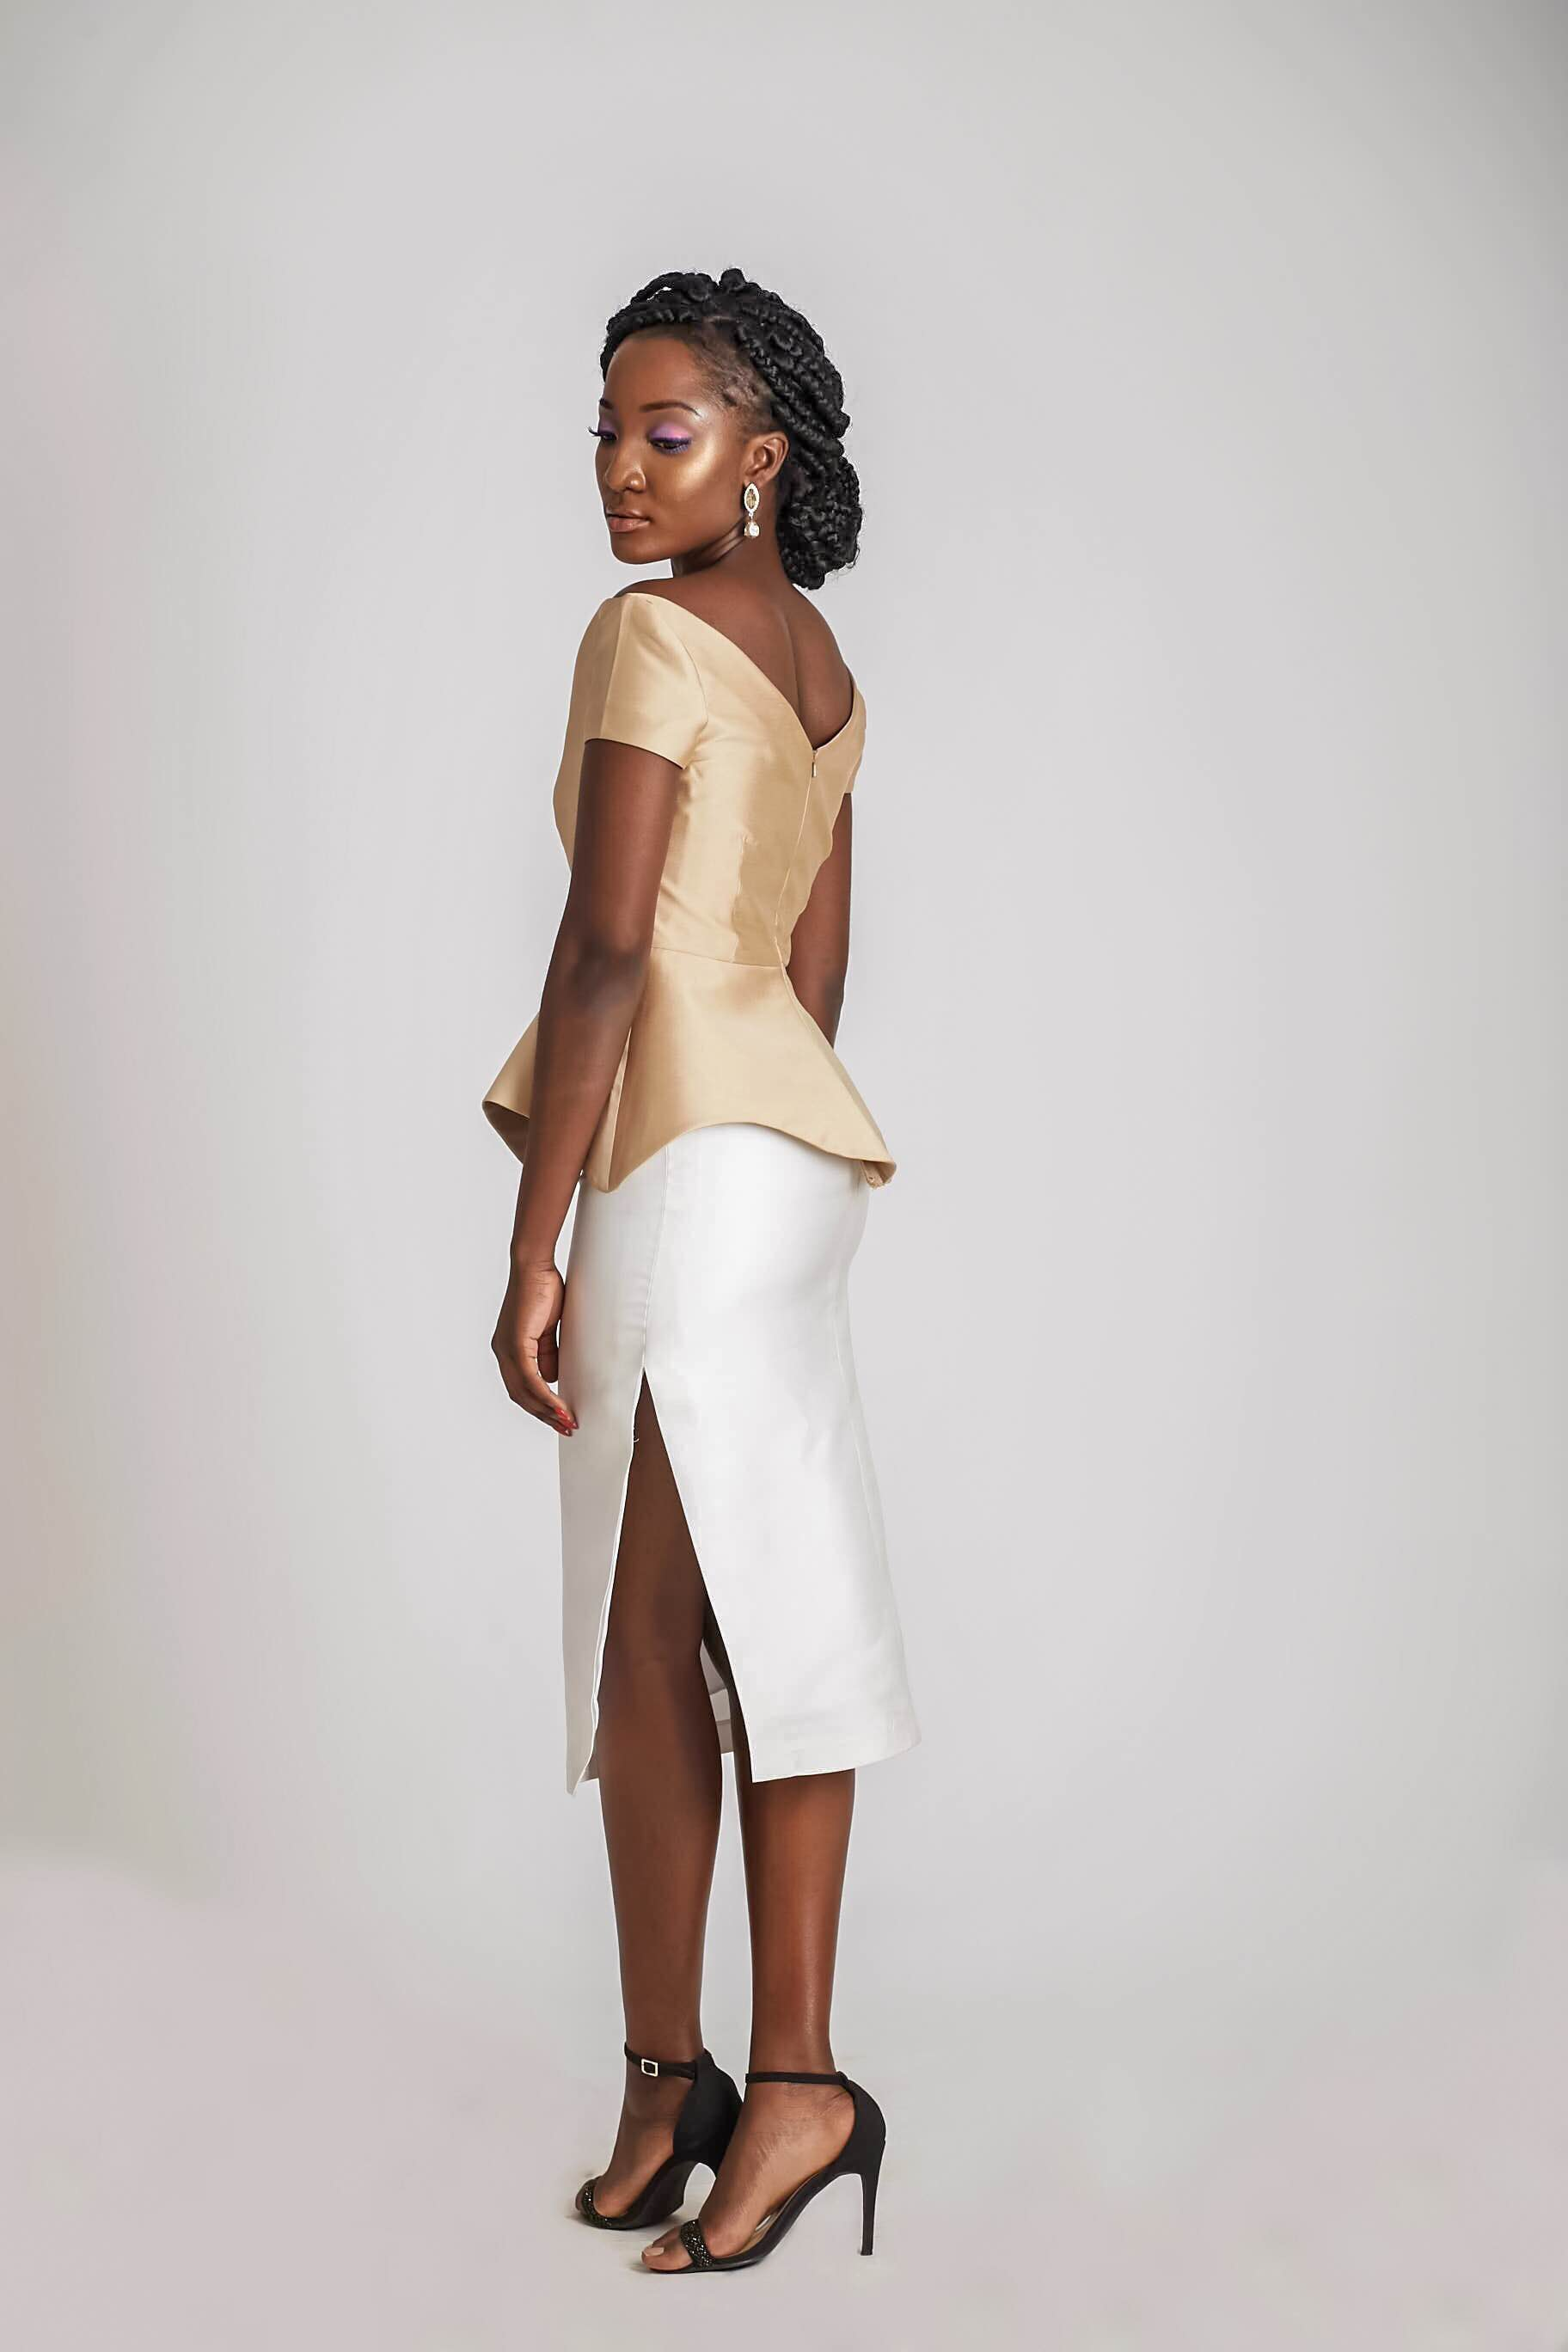 Imad Eduso - BN Style - Collection Lookbook - BellaNaija.com 014